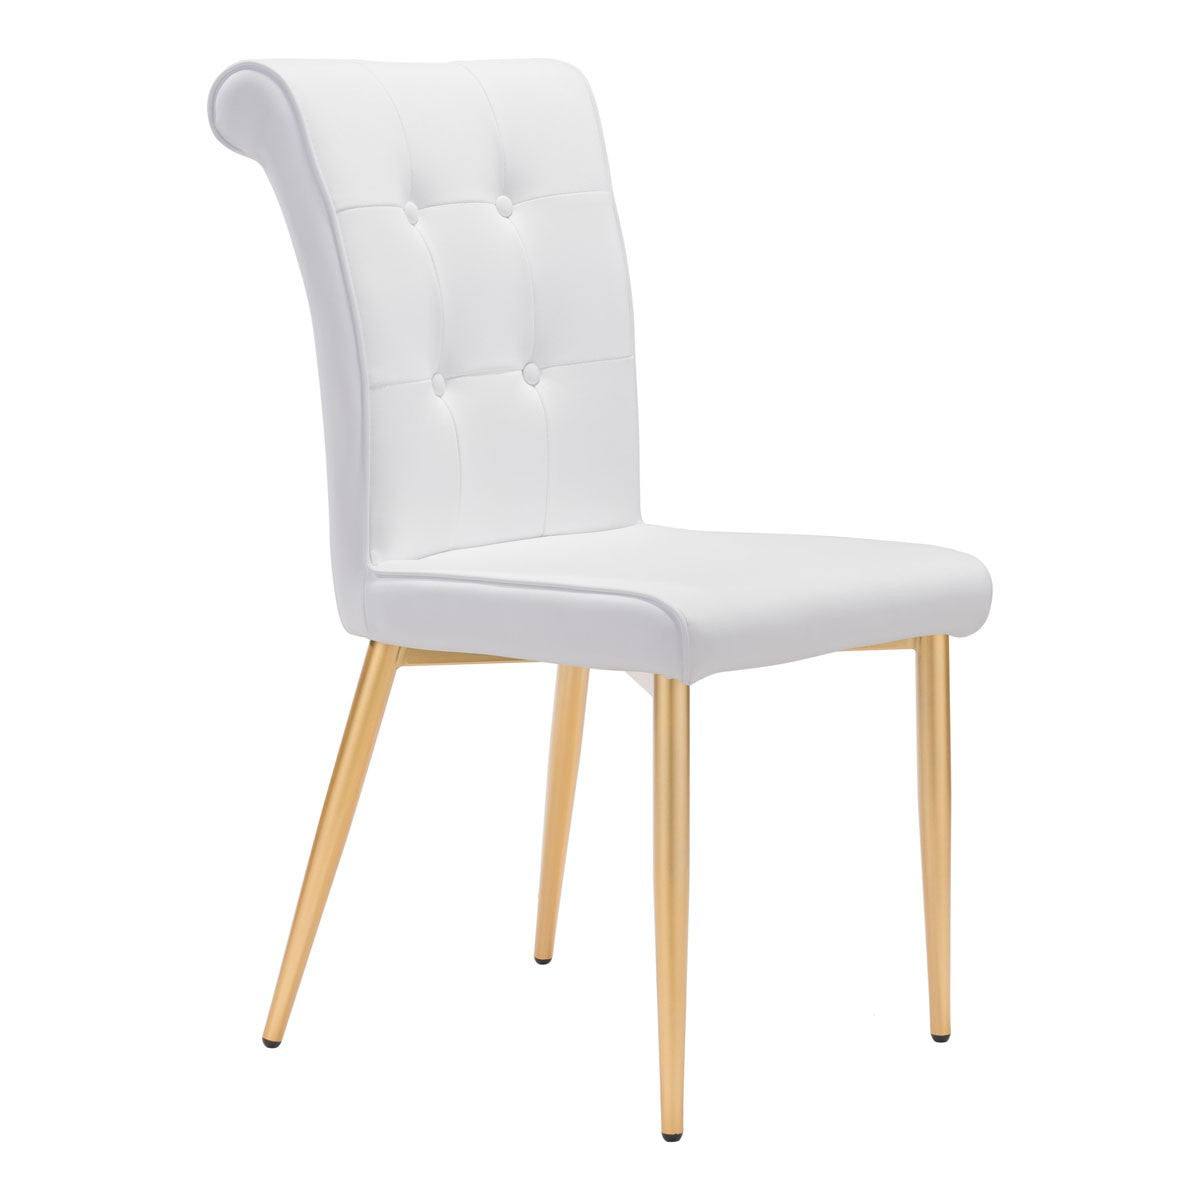 Zuo Niles Dining Chair White (Set of 2)